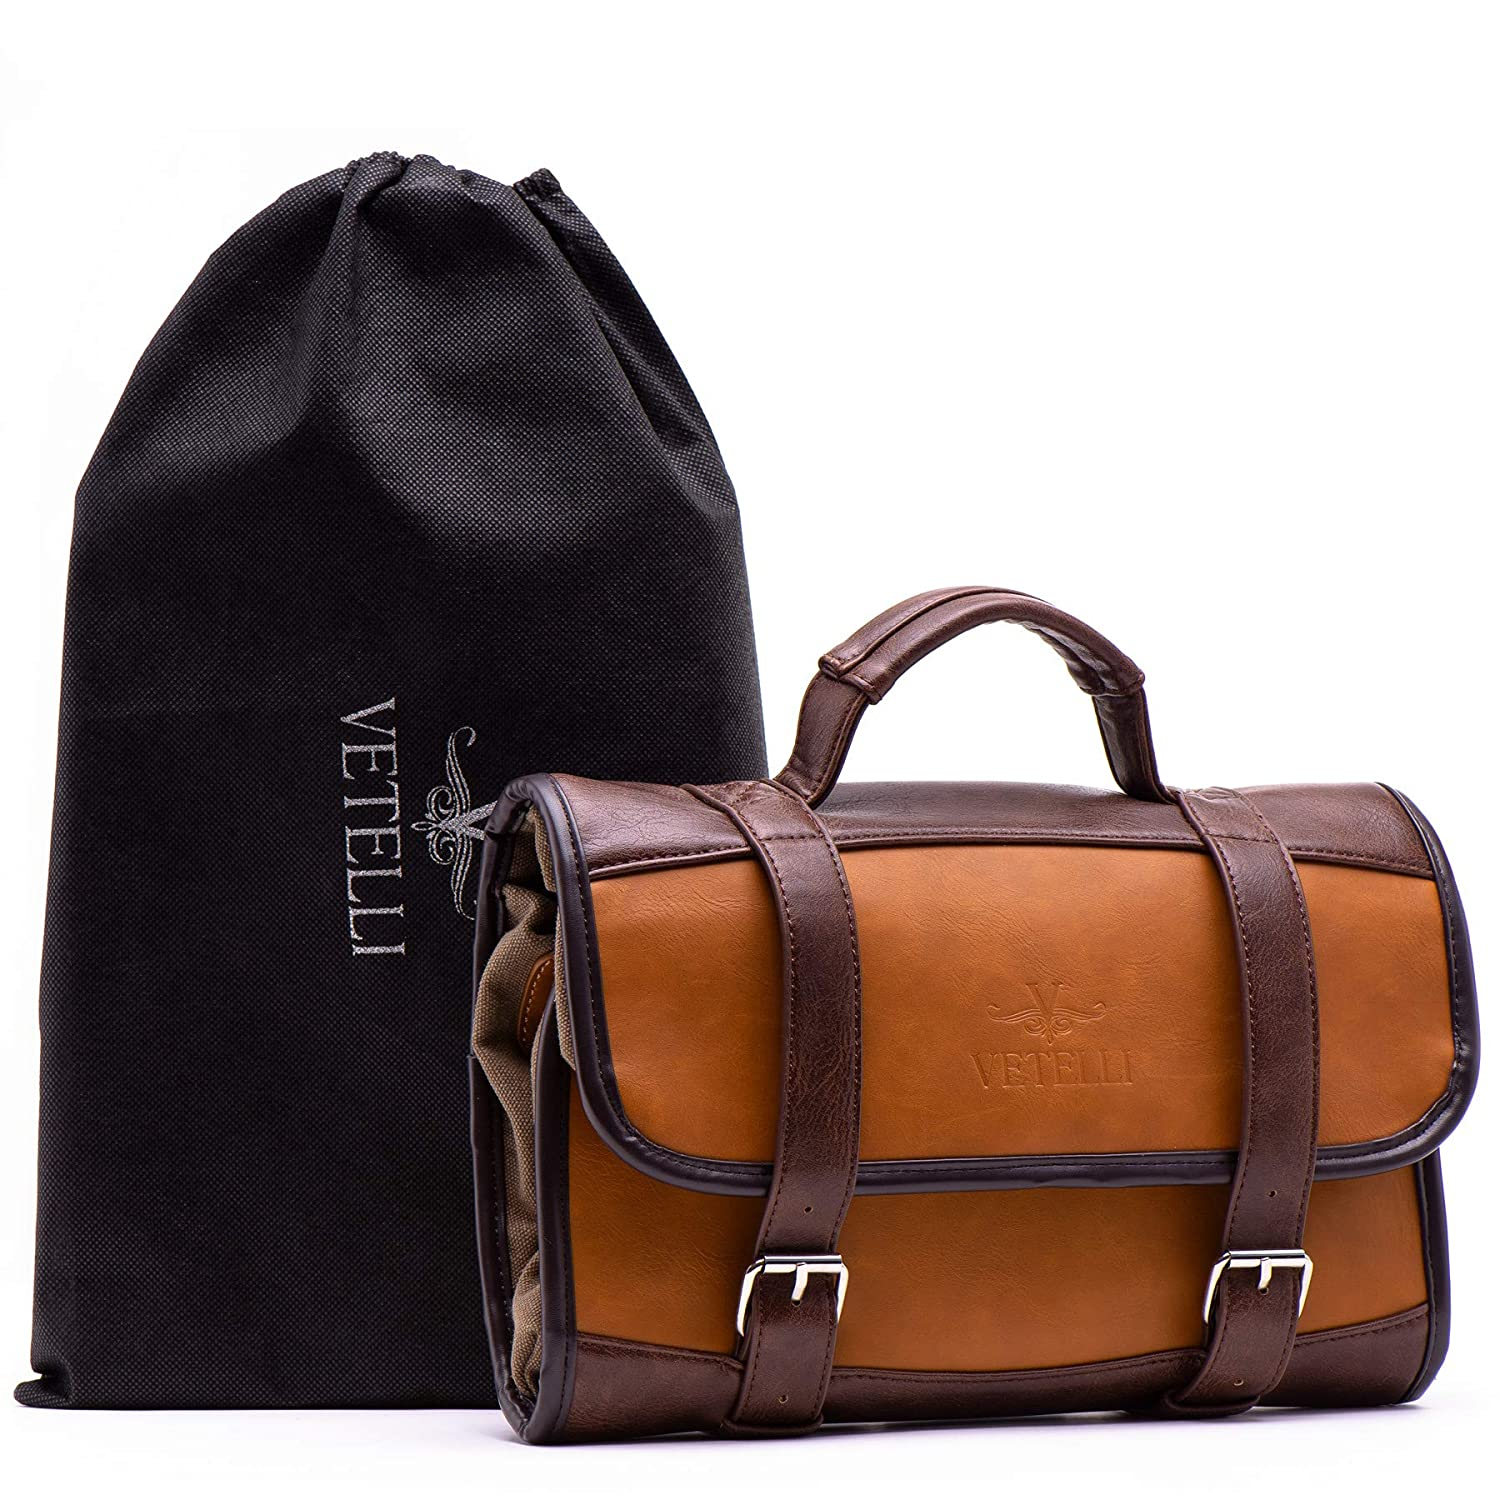 86576e22a2 Vetelli Hanging Toiletry Bag for Men - Dopp Kit   Travel Accessories Bag    Great Gift  Amazon.com.au  Toys   Games